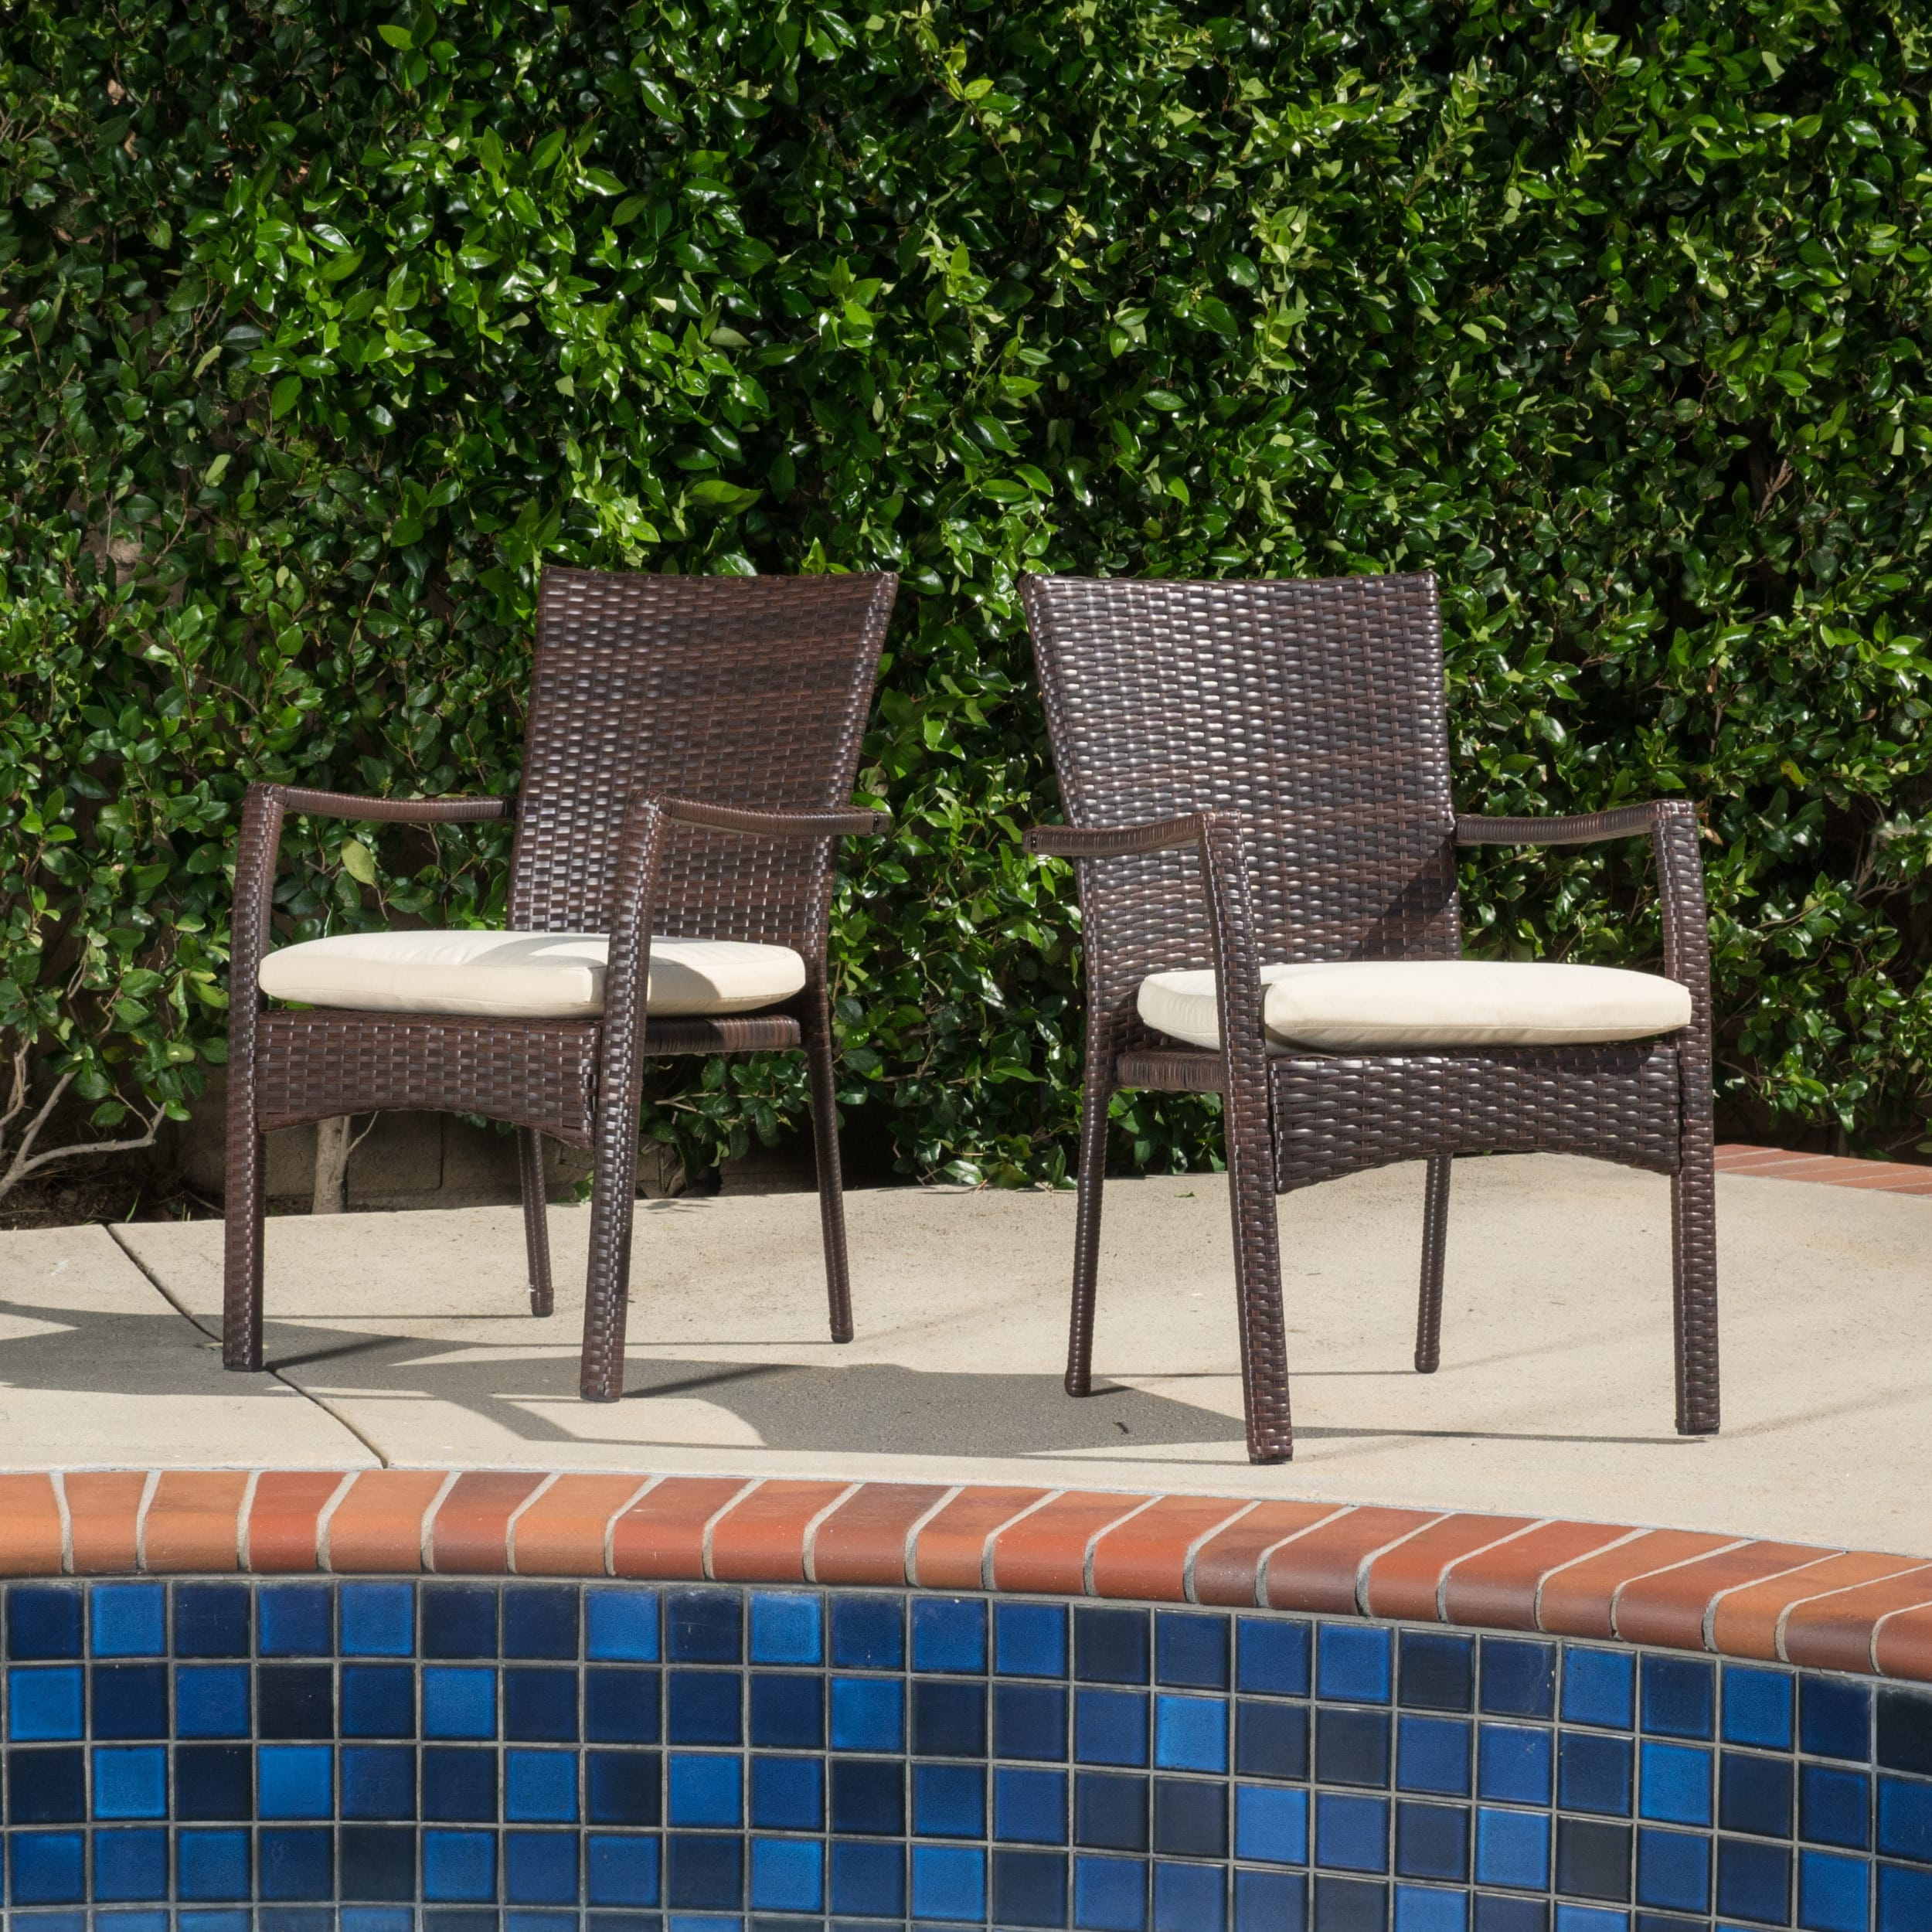 Corsica Outdoor Wicker Dining Chair with Cushion (Set of 2) by Christopher  Knight Home - Free Shipping Today - Overstock.com - 17546946